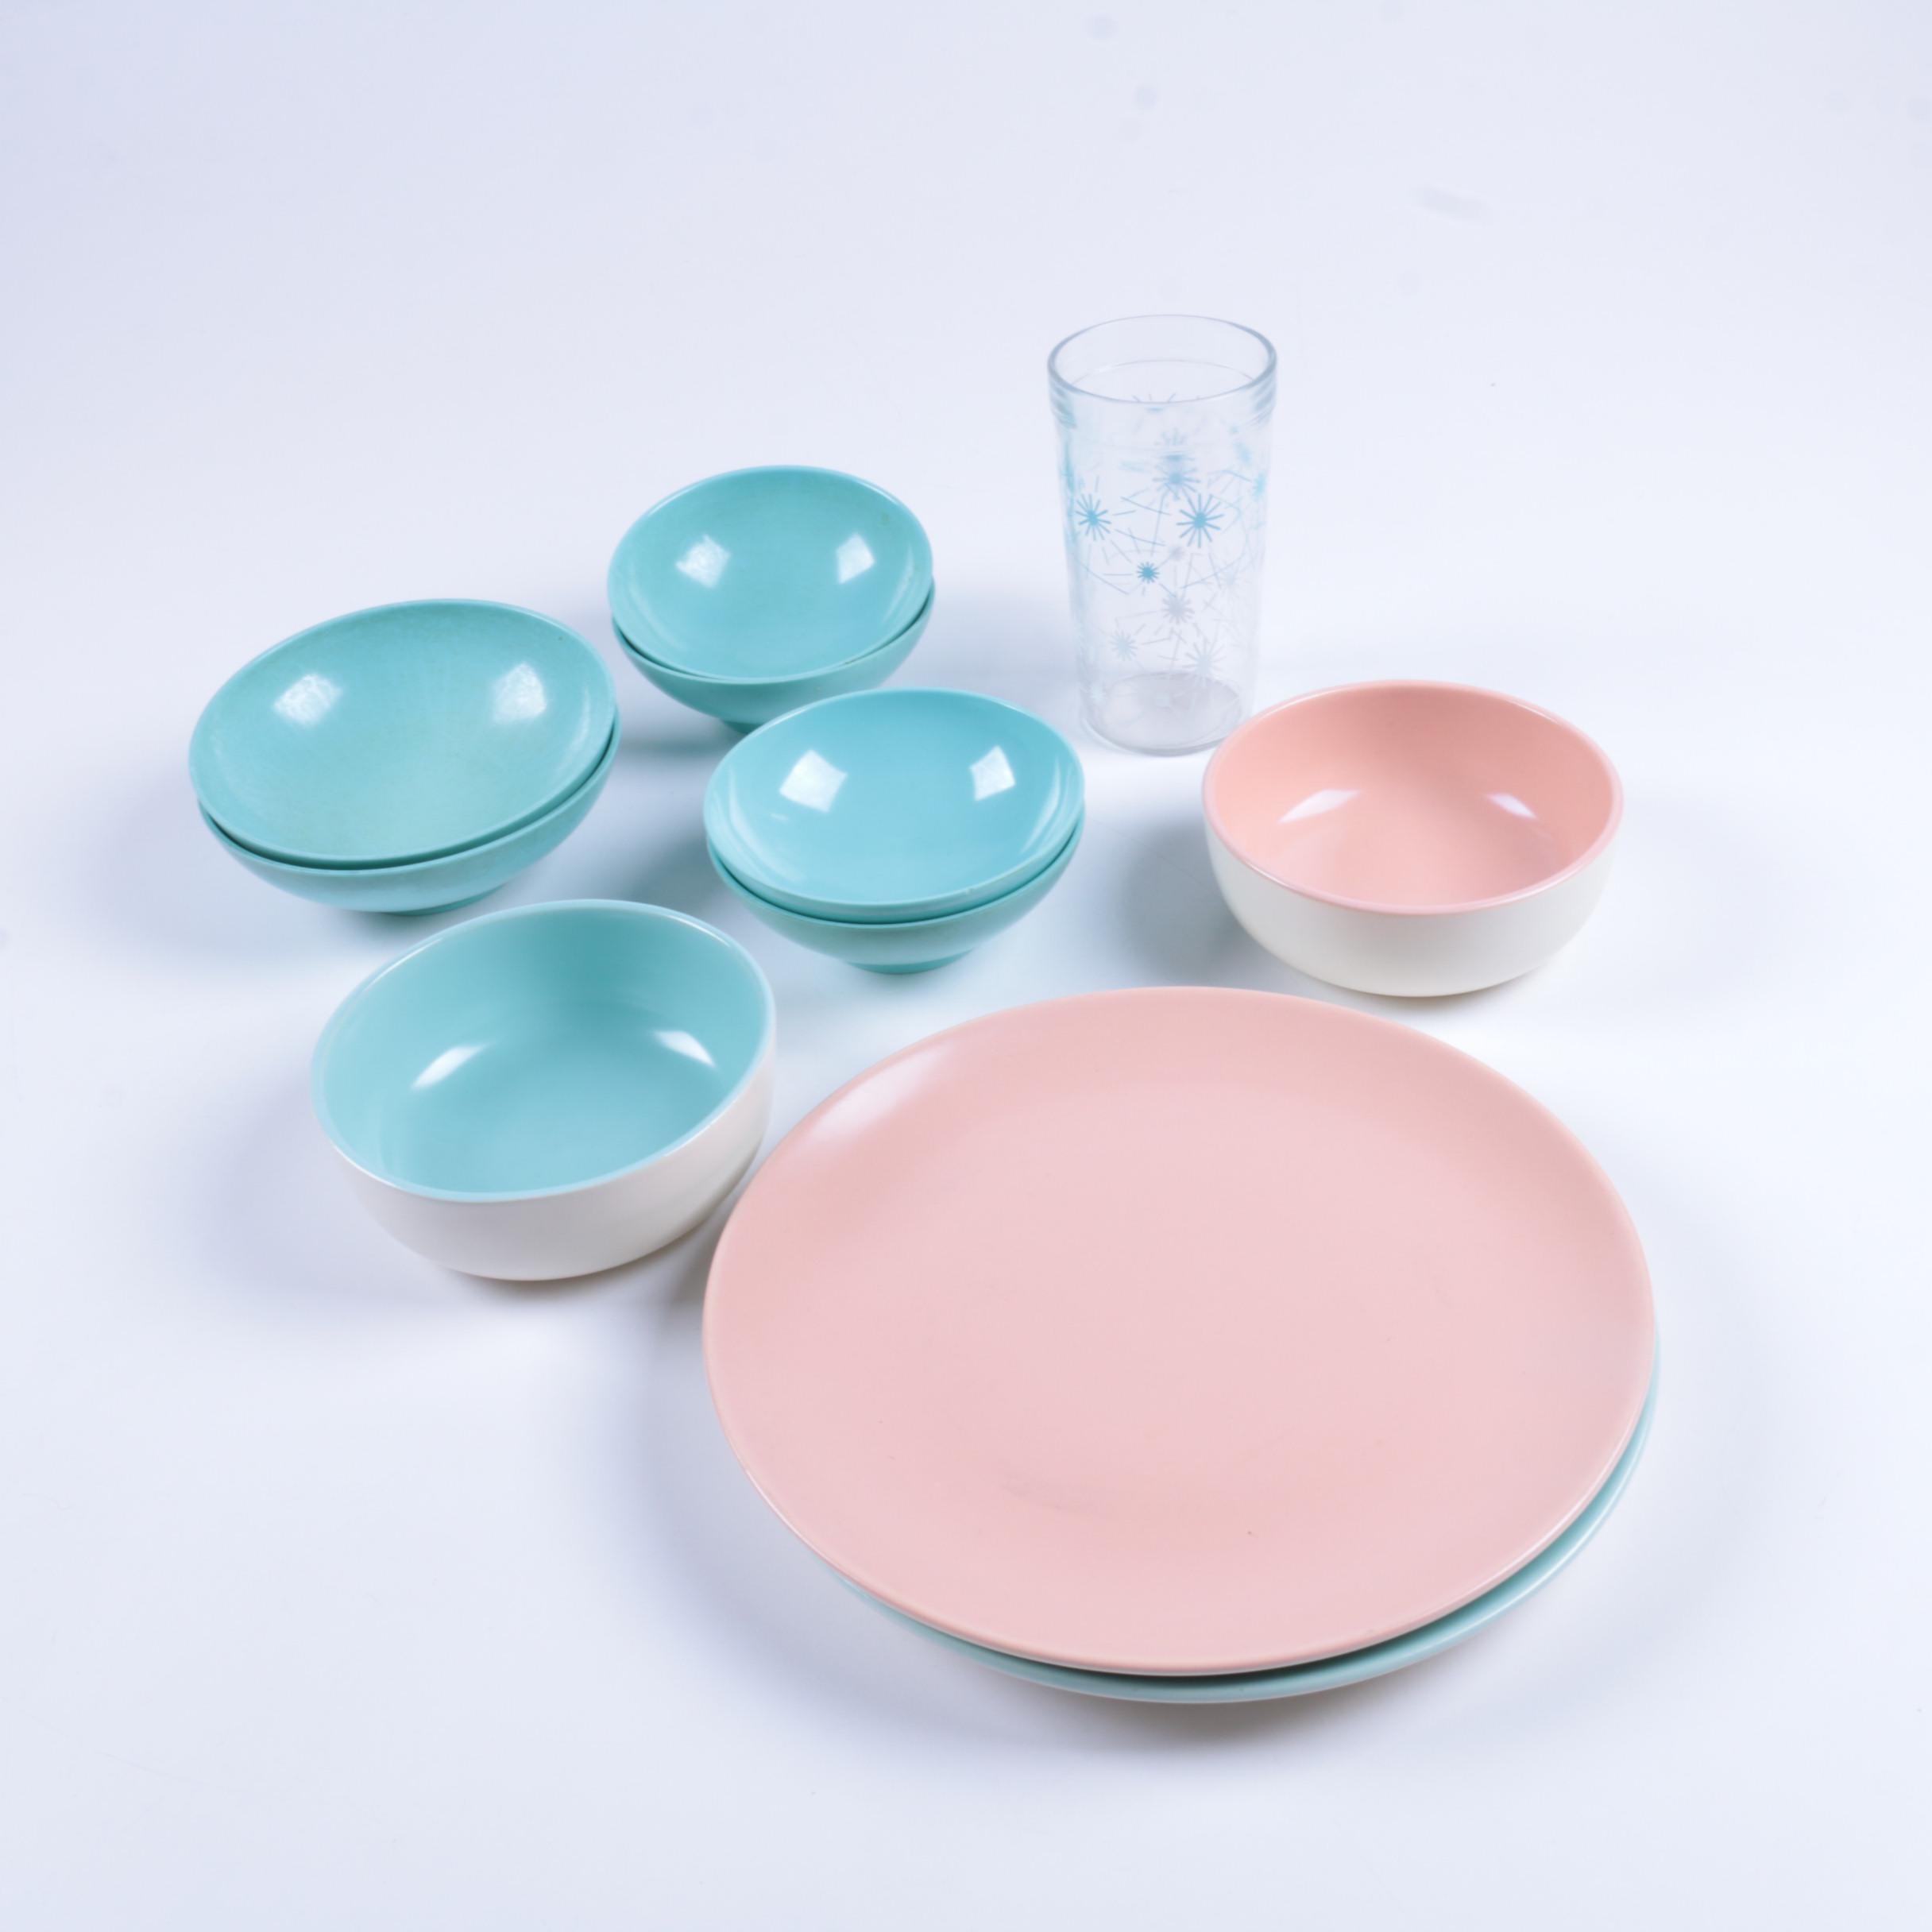 Vintage Melamine and Ceramic Dishes Featuring Texas Ware